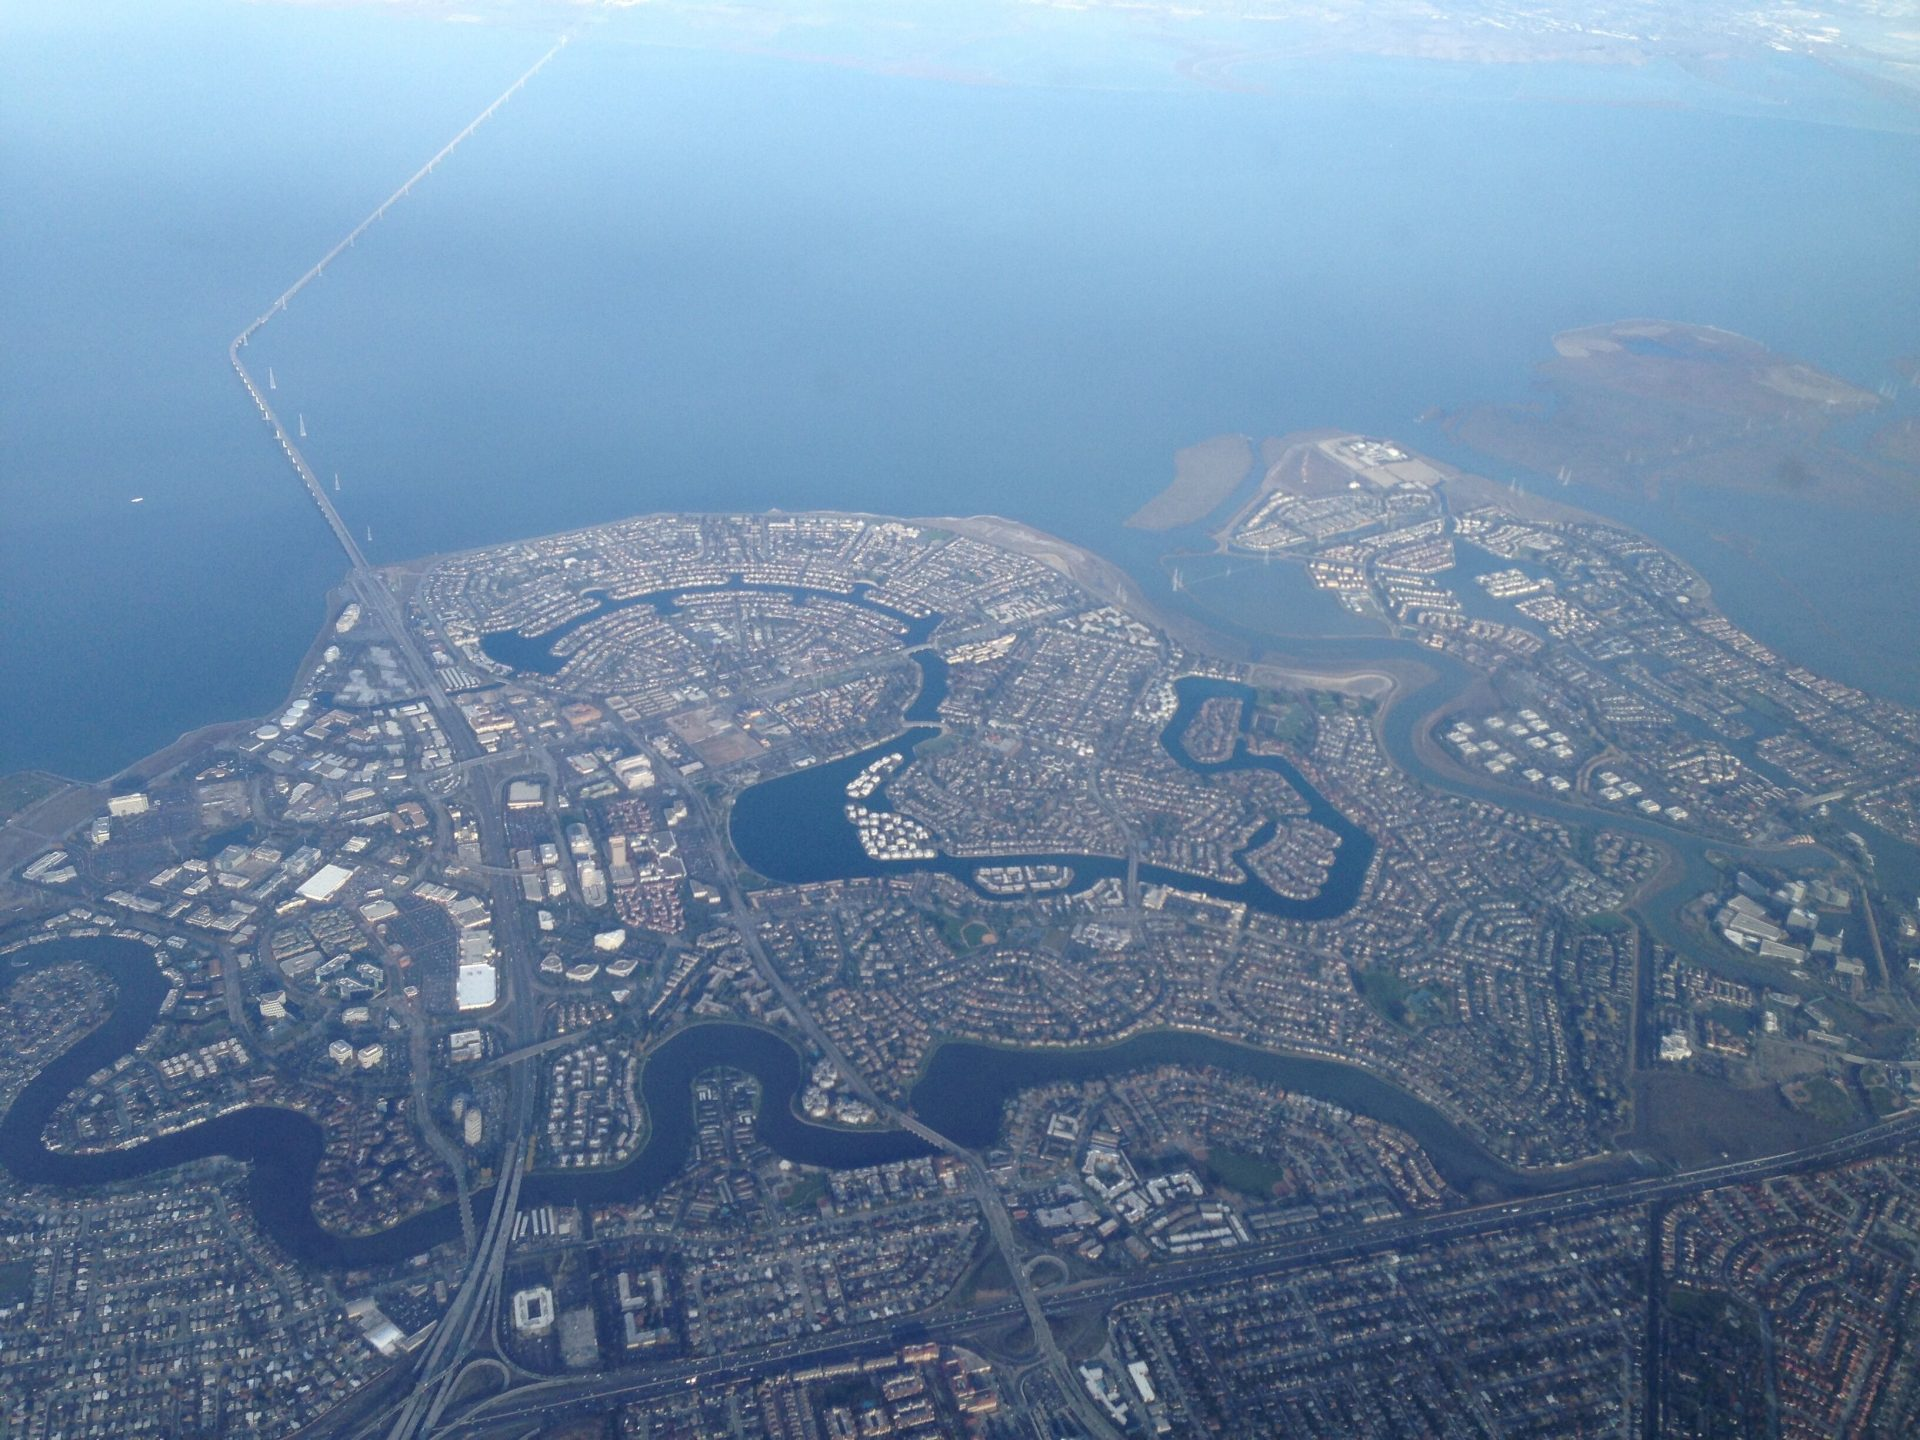 Land-Use Planning in an Era of Rising Seas